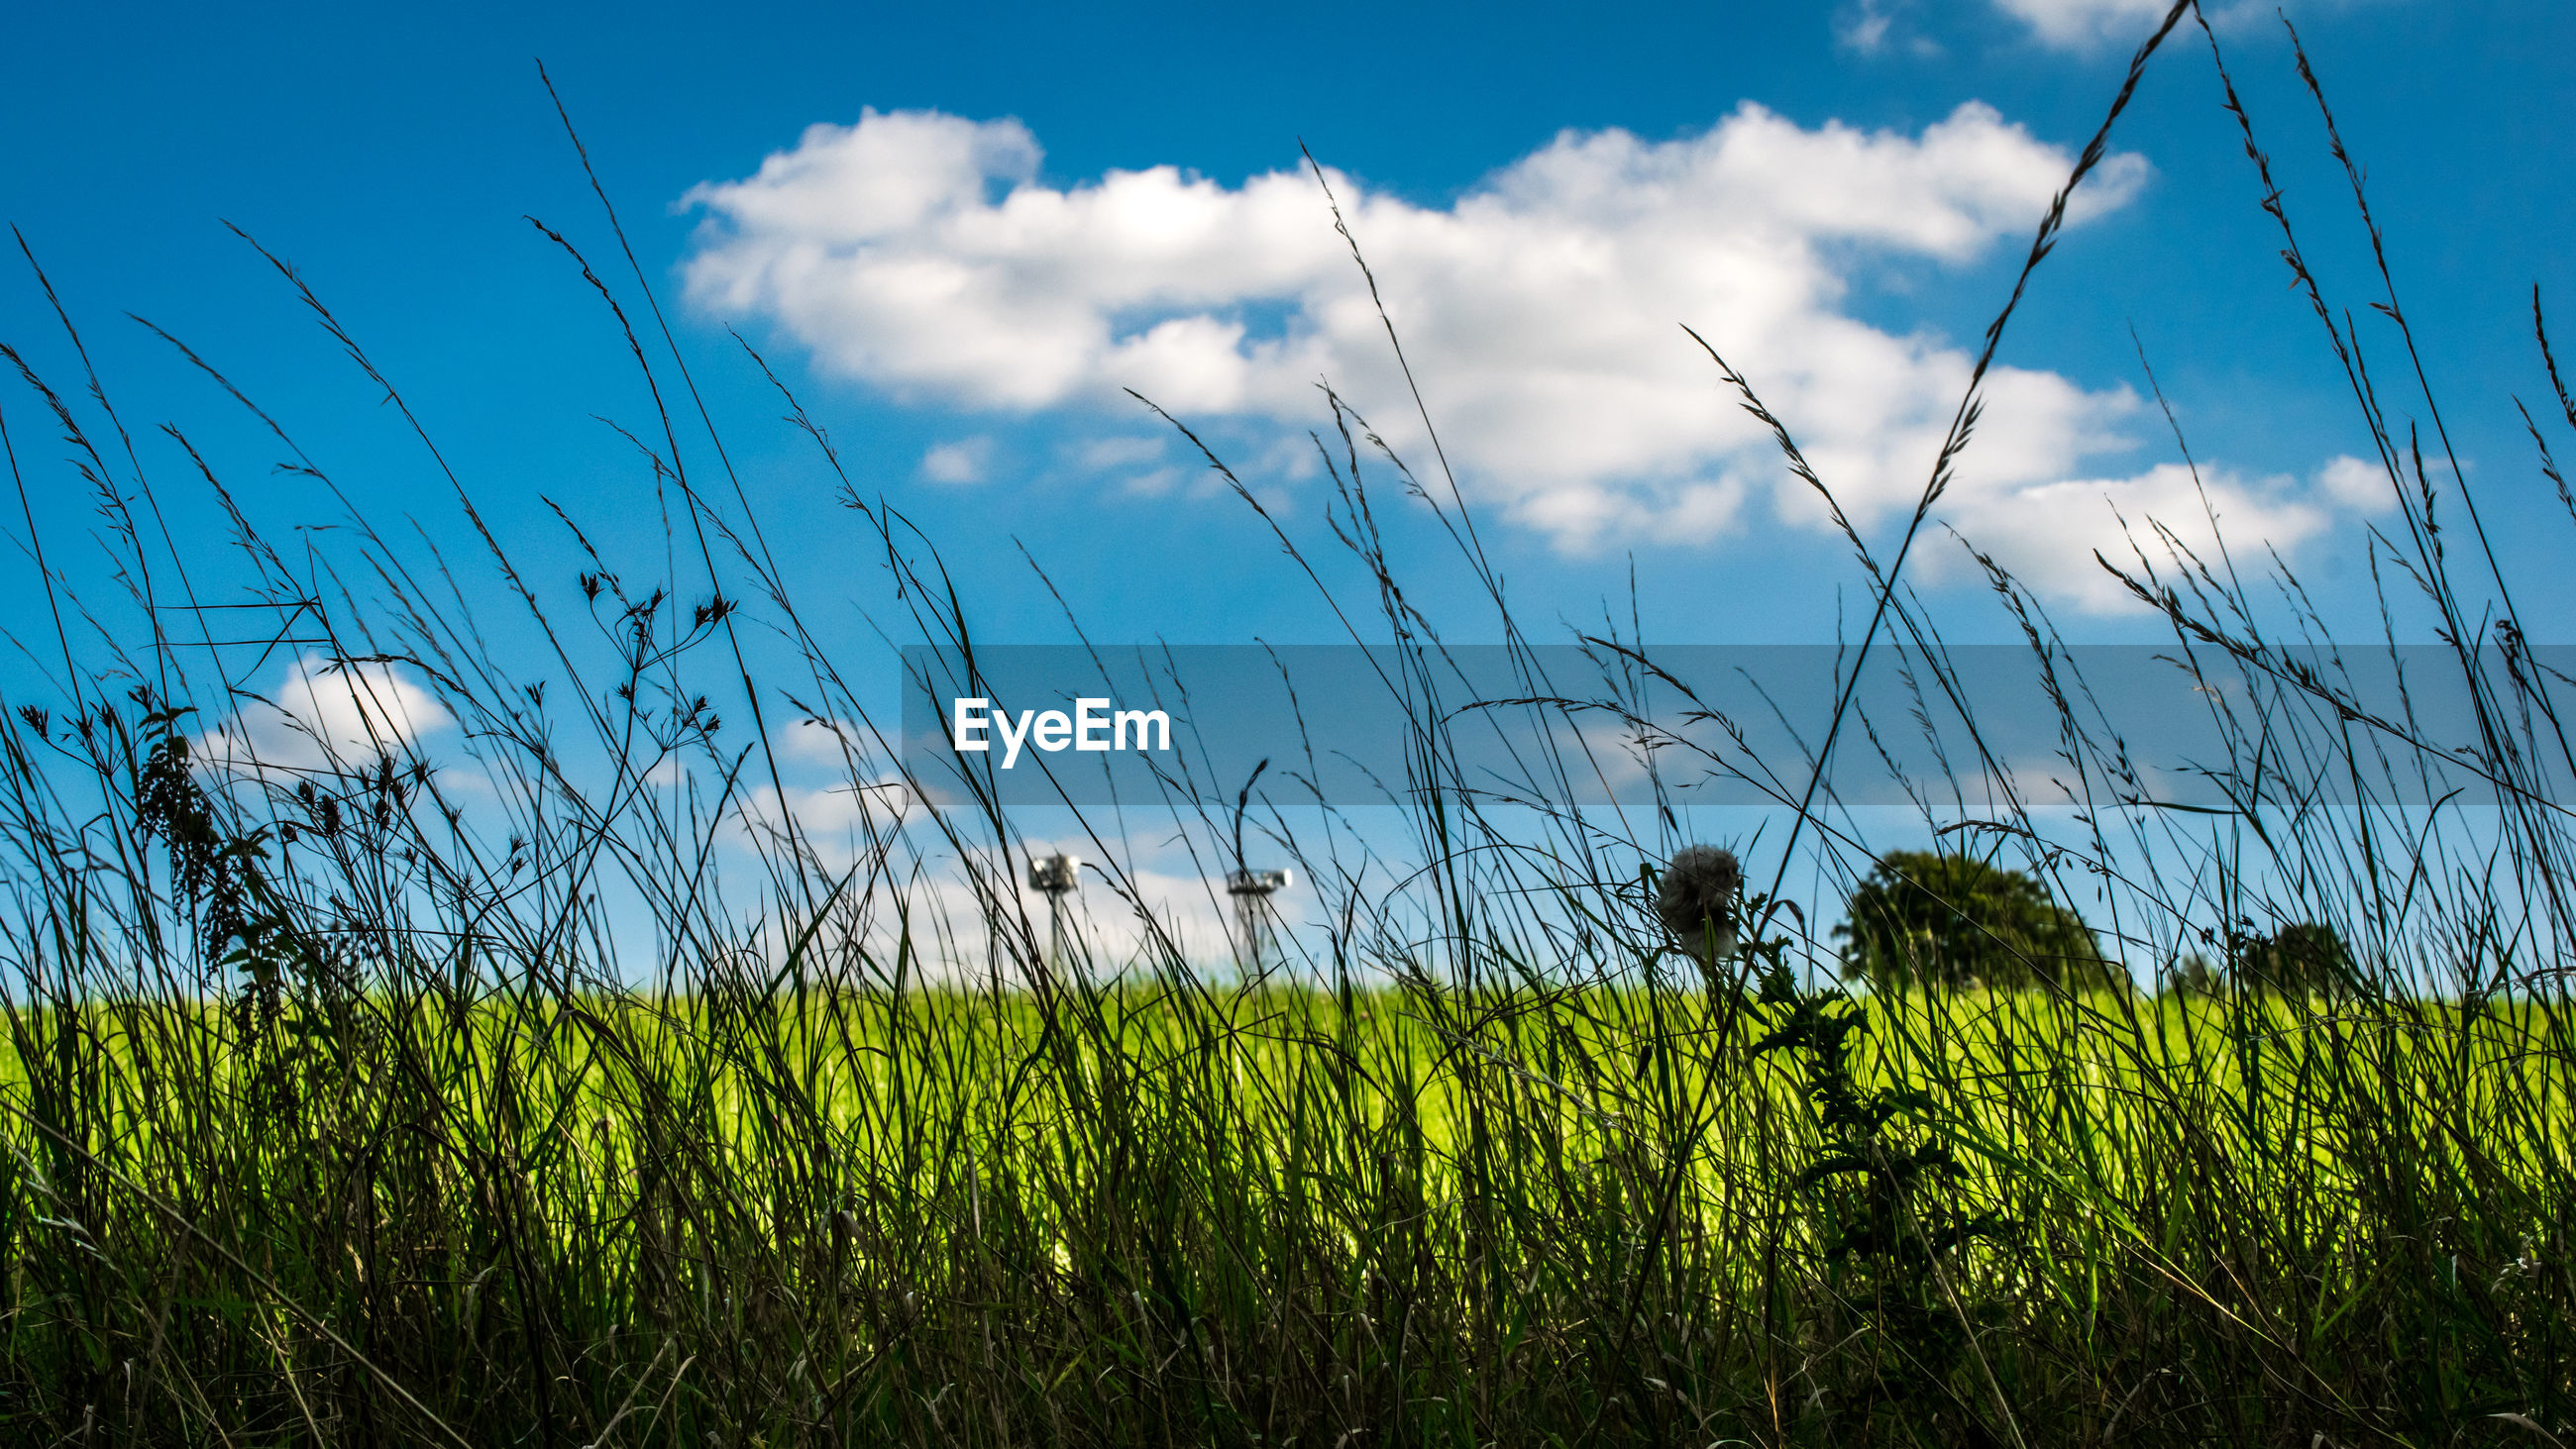 growth, grass, nature, sky, field, tranquil scene, tranquility, plant, green color, cloud - sky, day, crop, no people, agriculture, beauty in nature, outdoors, scenics, rural scene, landscape, cereal plant